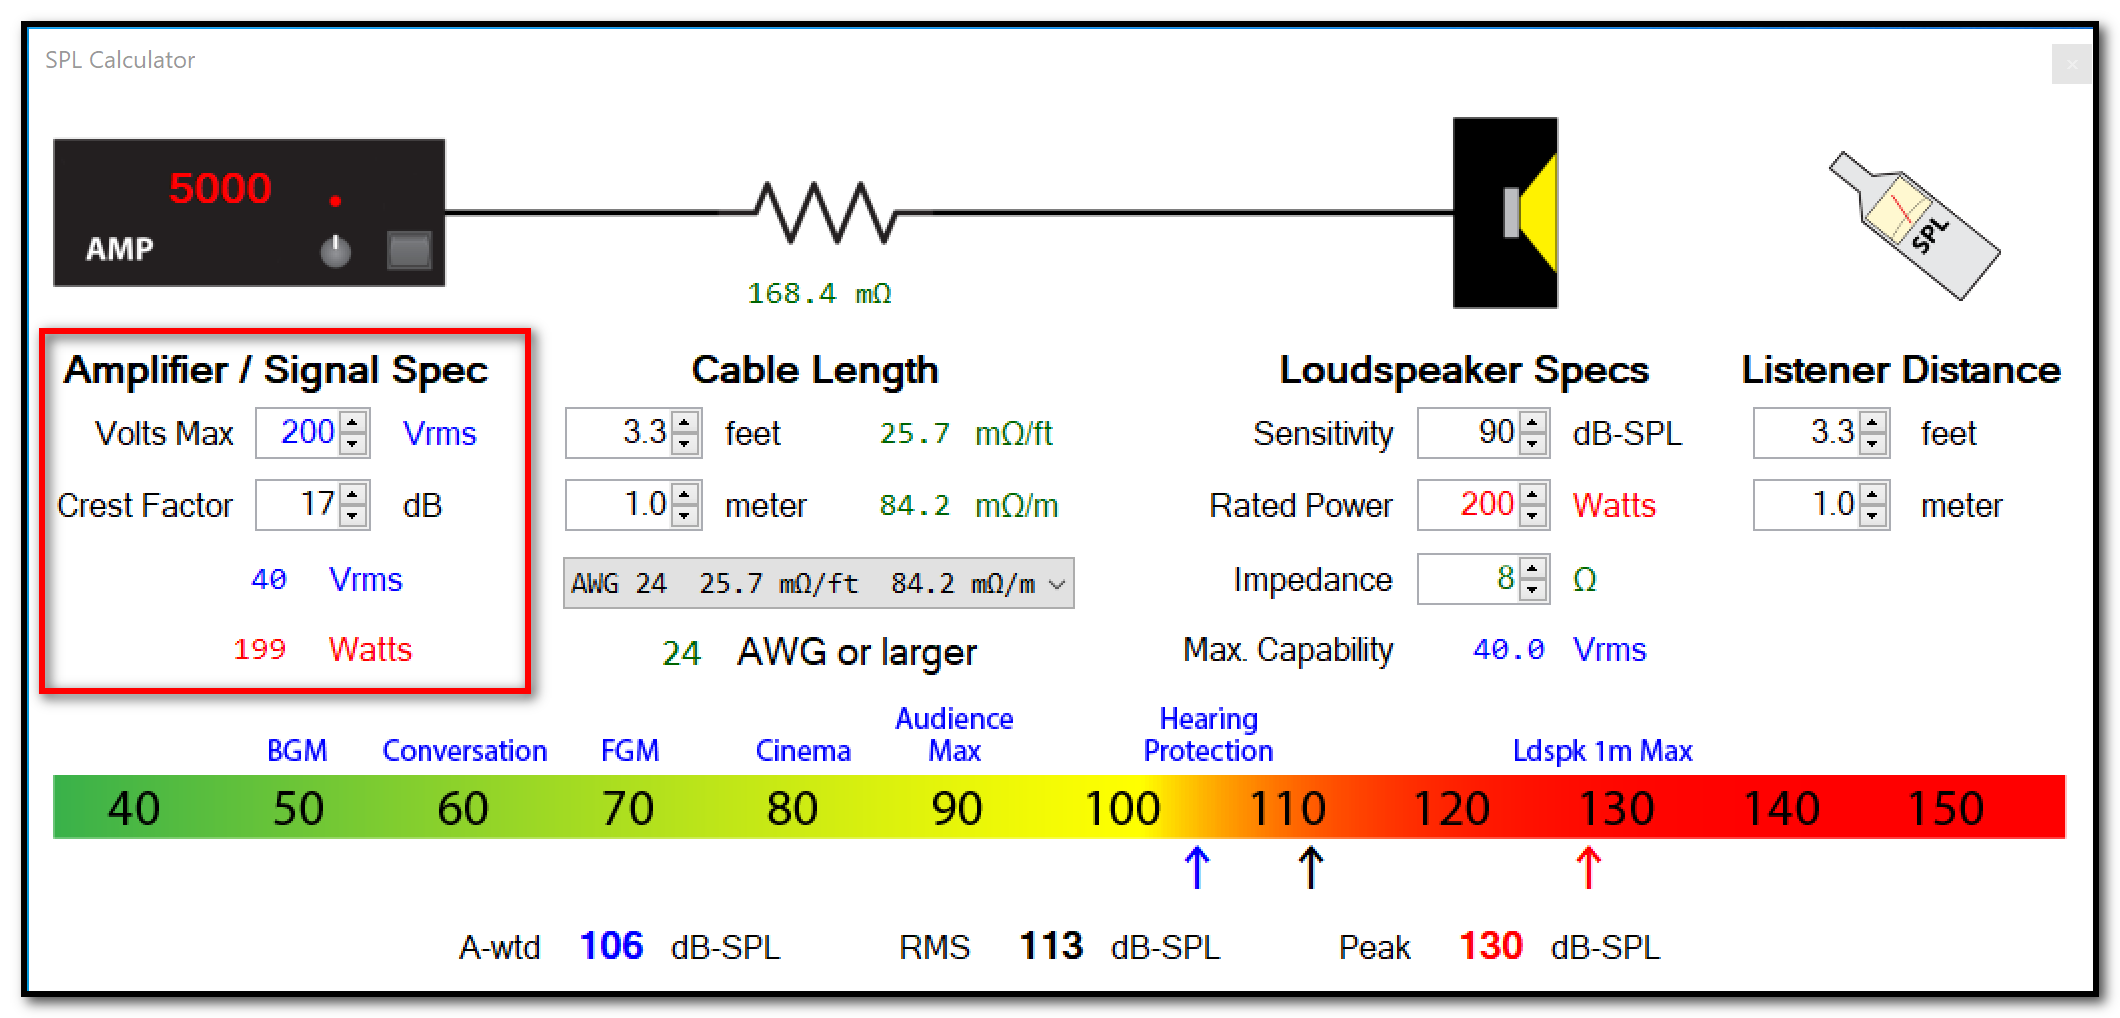 Figure 4 - The CAFViewer Low-Z Calculator set for a 5 kW (theoretical!) amplifier. The RMS voltage attainable is insufficient to produce power compression in many loudspeakers. Amplifier test waveforms are intentionally clipped to produce a higher RMS voltage.